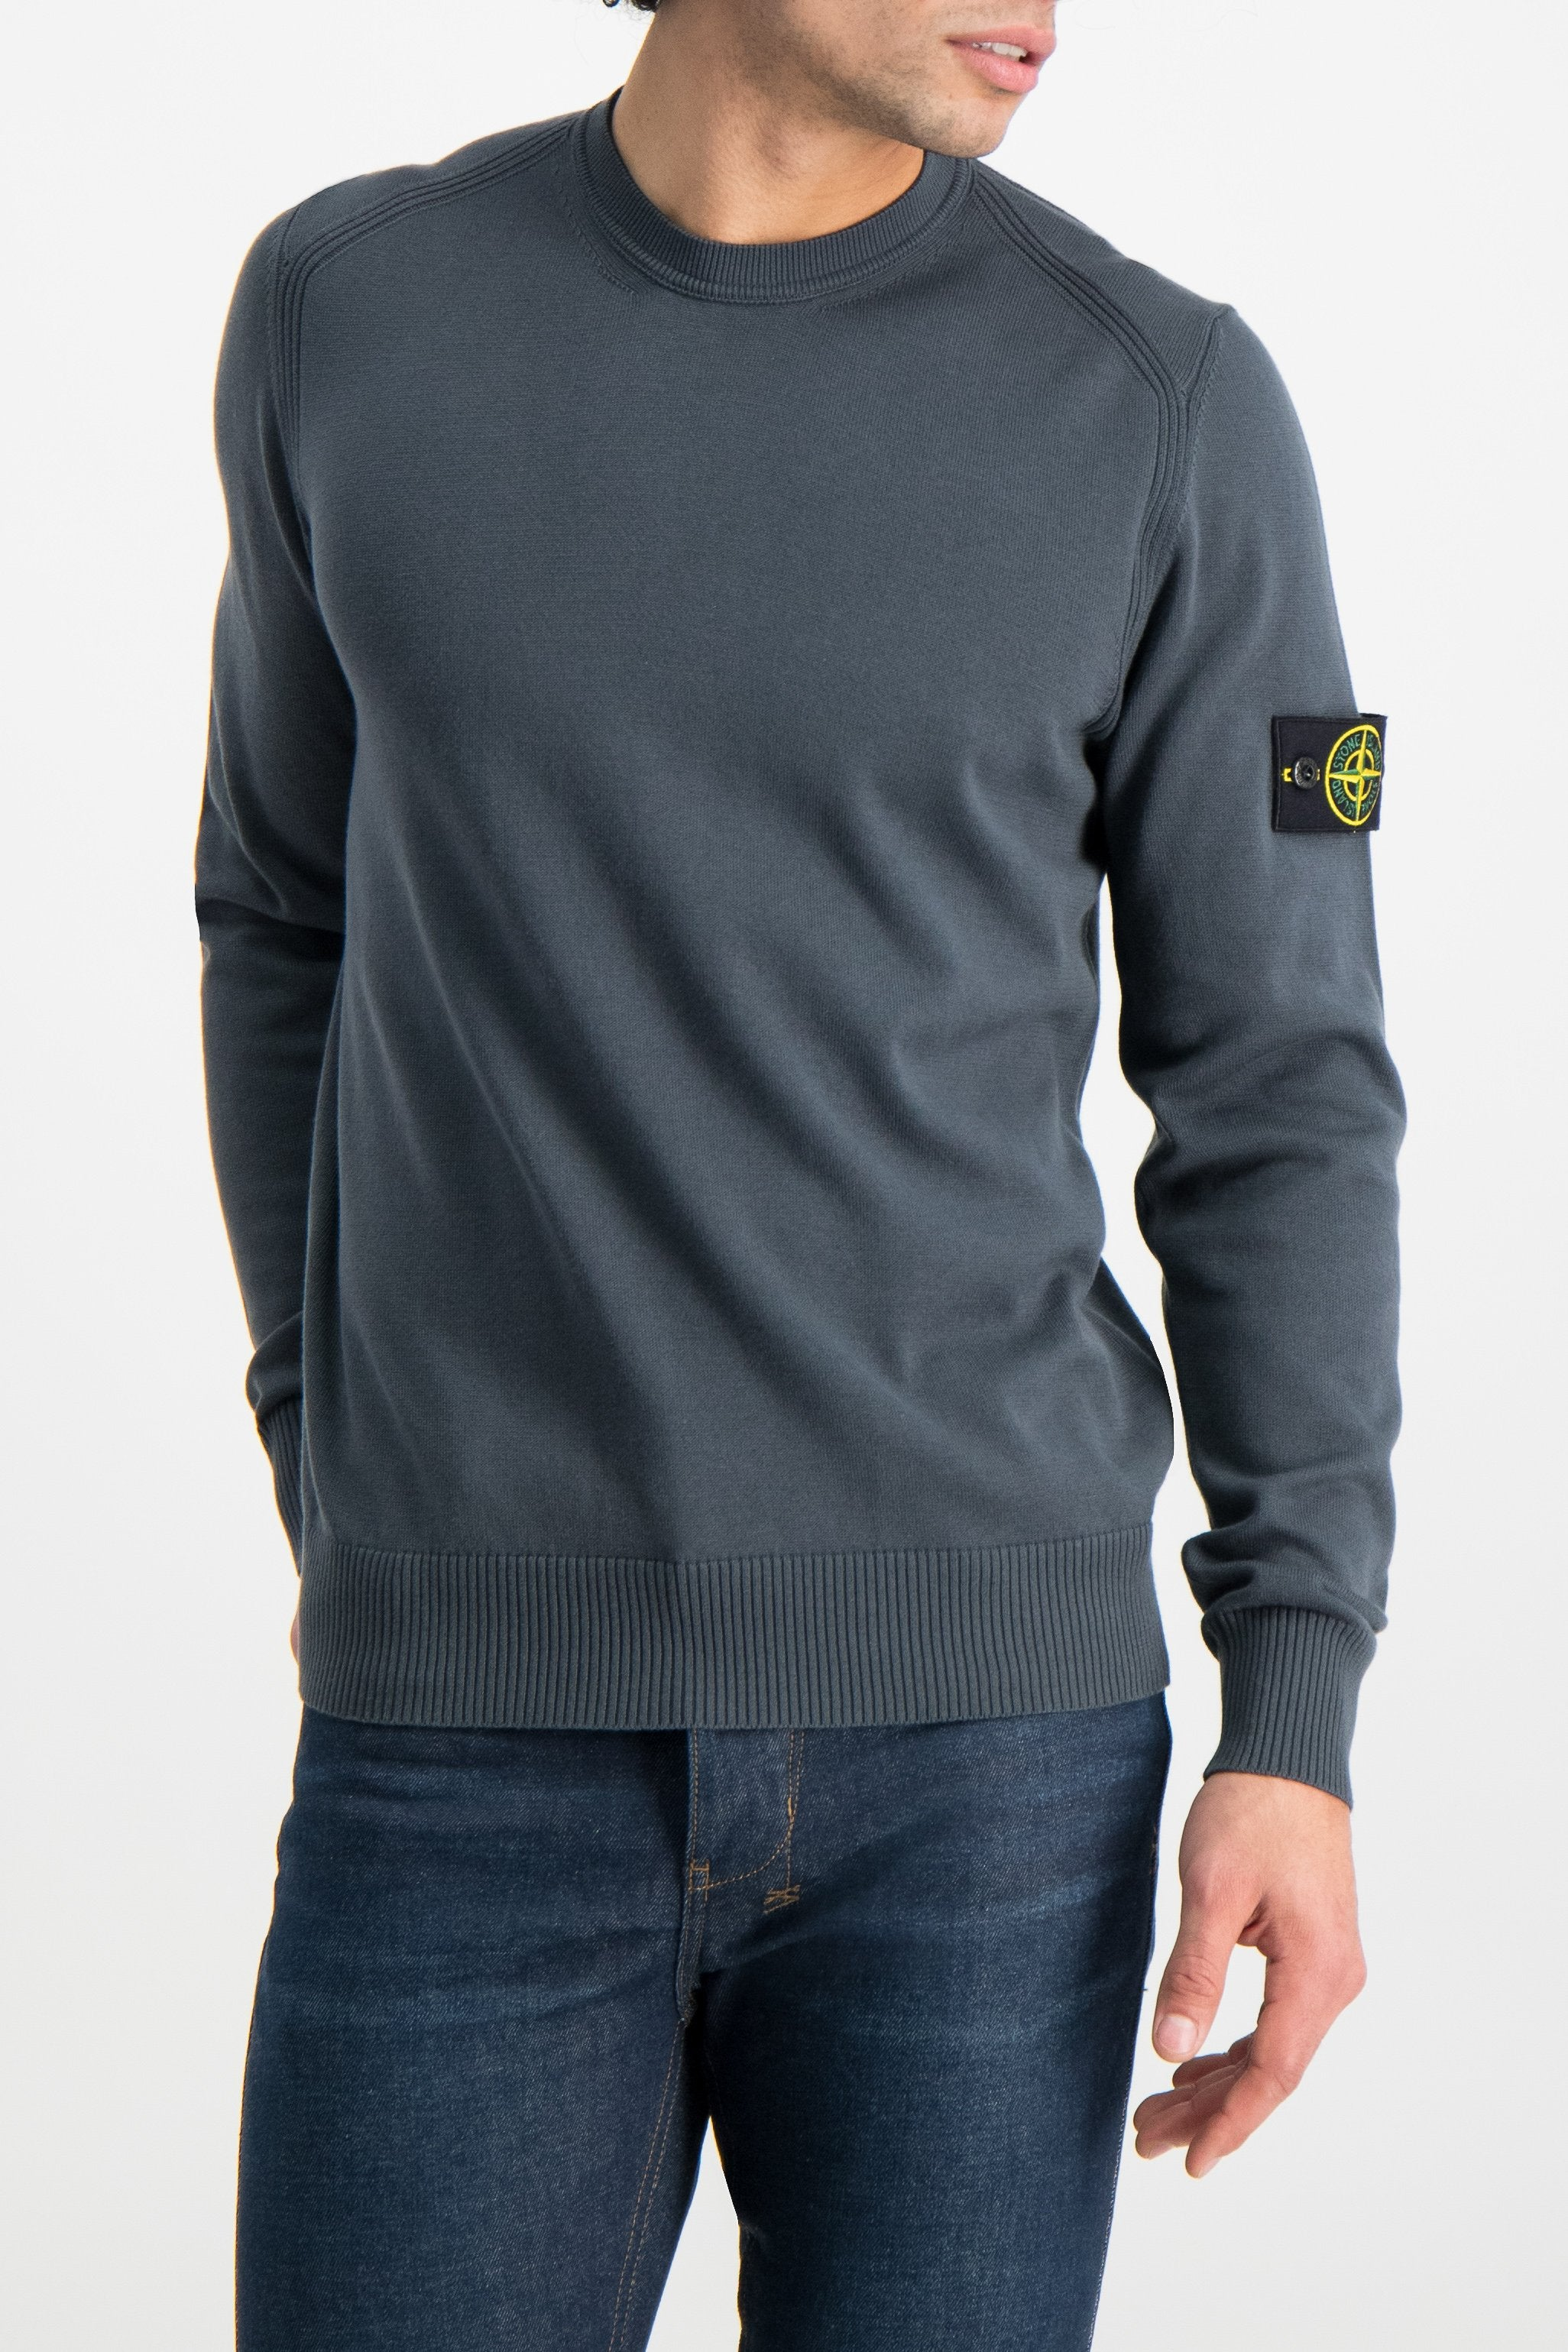 Front Crop Image Of Model Wearing Stone Island Long Sleeve Knit Blue Grey